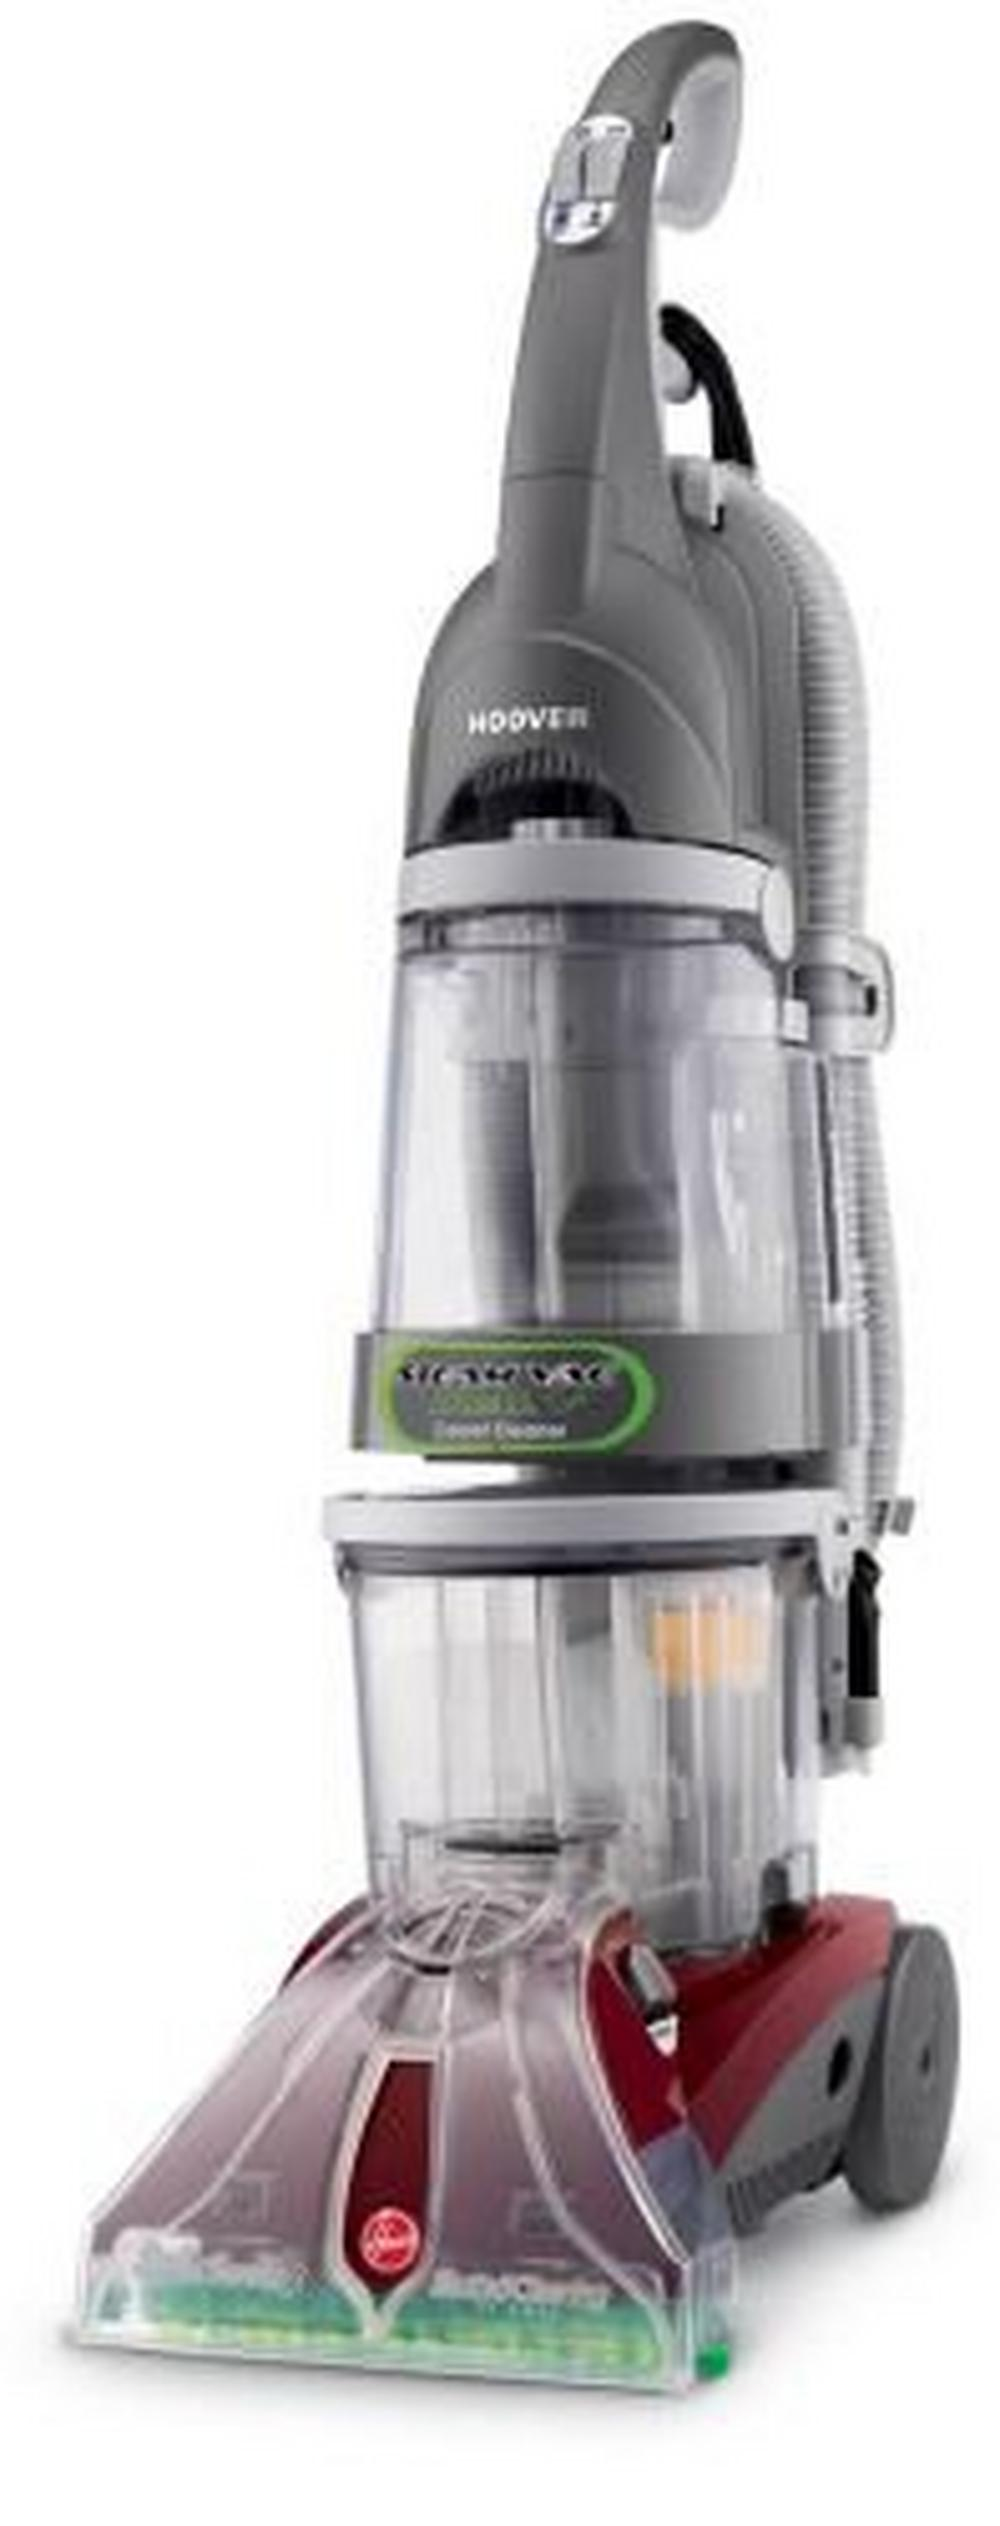 Reconditioned SteamVac Dual V Carpet Cleaner2